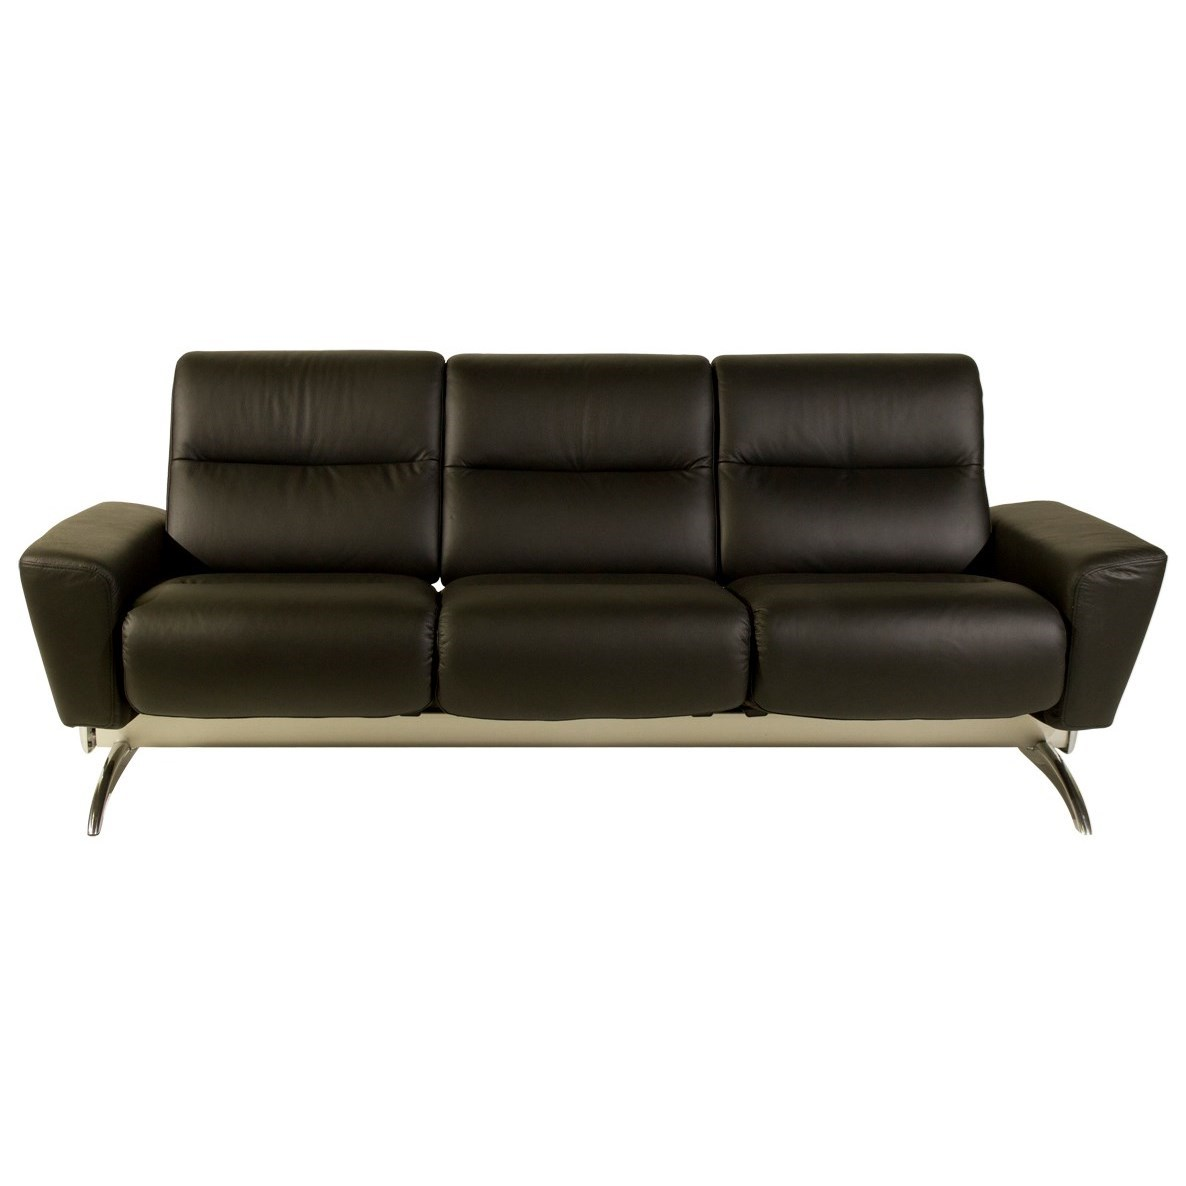 Stressless Como Sofa Uk Stressless Stressless You 1501030 Julia 3 Seater Sofa With